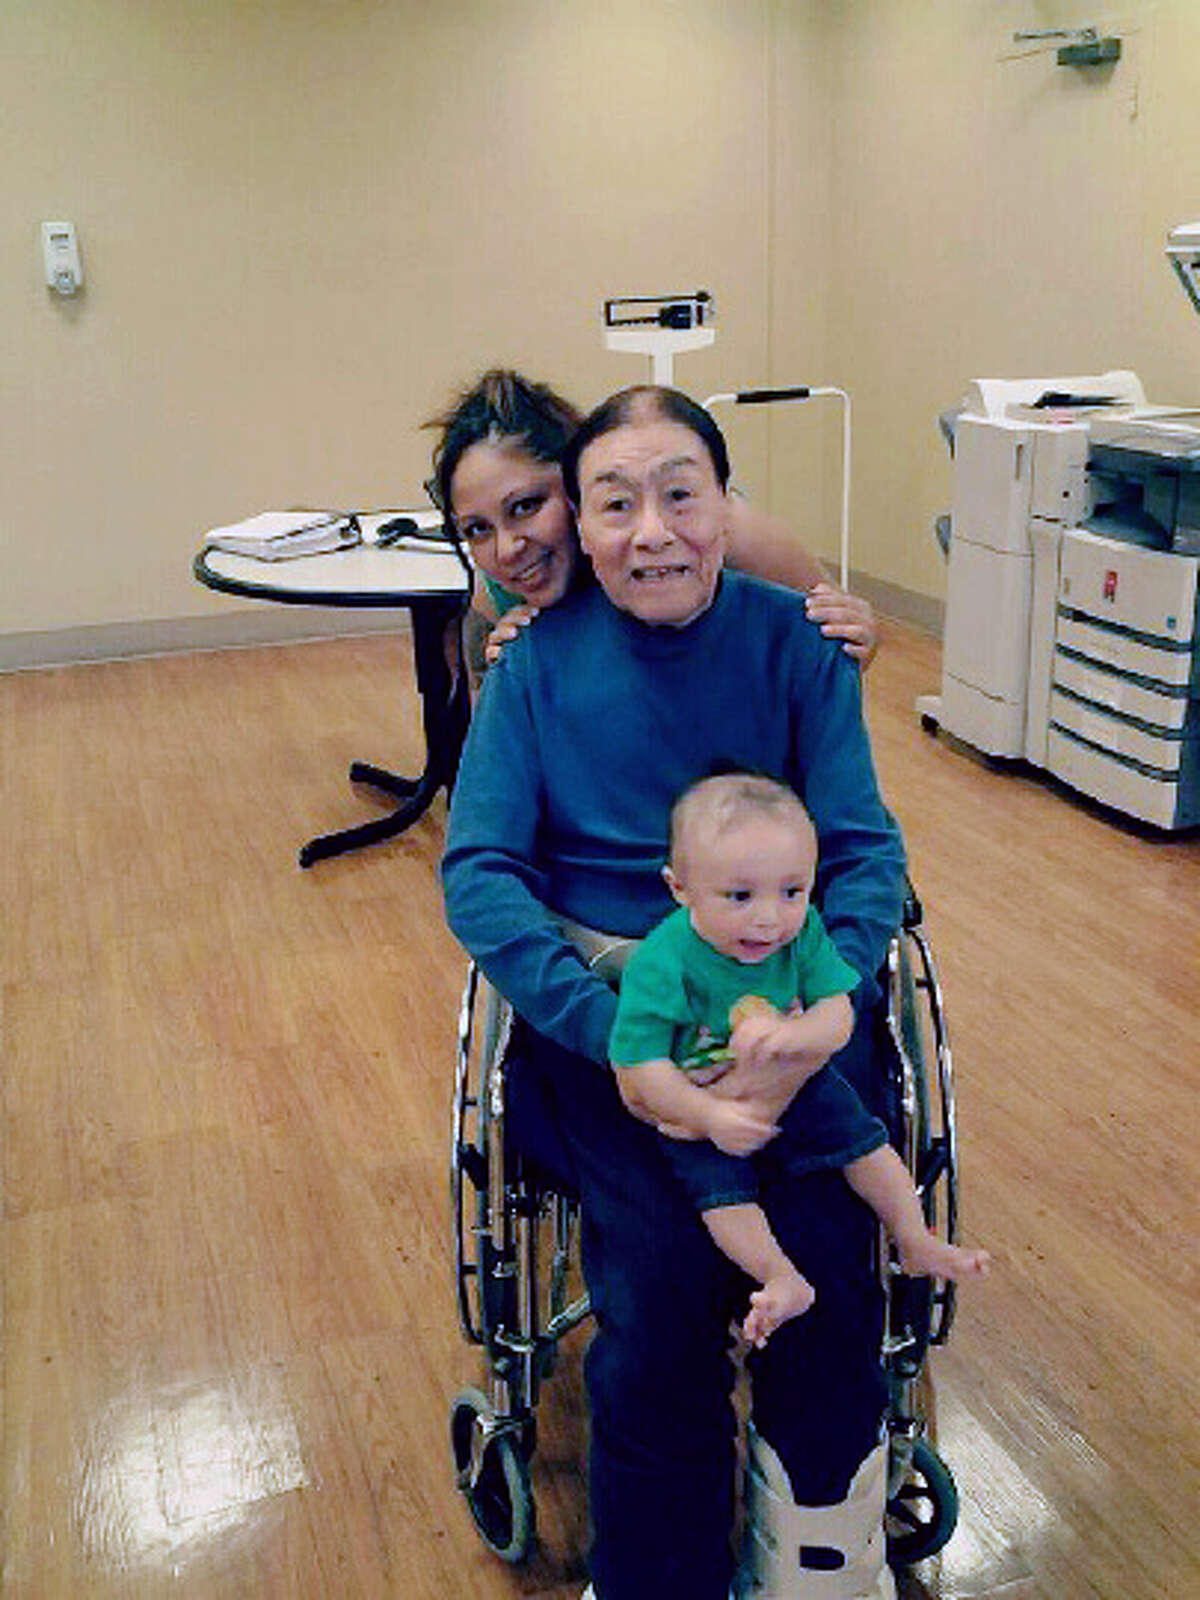 This image provided by Sergio Godoy shows his sister Janet Godoy, rear, grandfather Antonio Acosta and Janet Godoy's son Juan Manuel Gonzalez. Police say a resident of a Houston nursing home will face capital murder charges for using the armrest of his wheelchair to beat two of his roommates, including Acosta, to death. (AP Photo/Sergio Godoy)